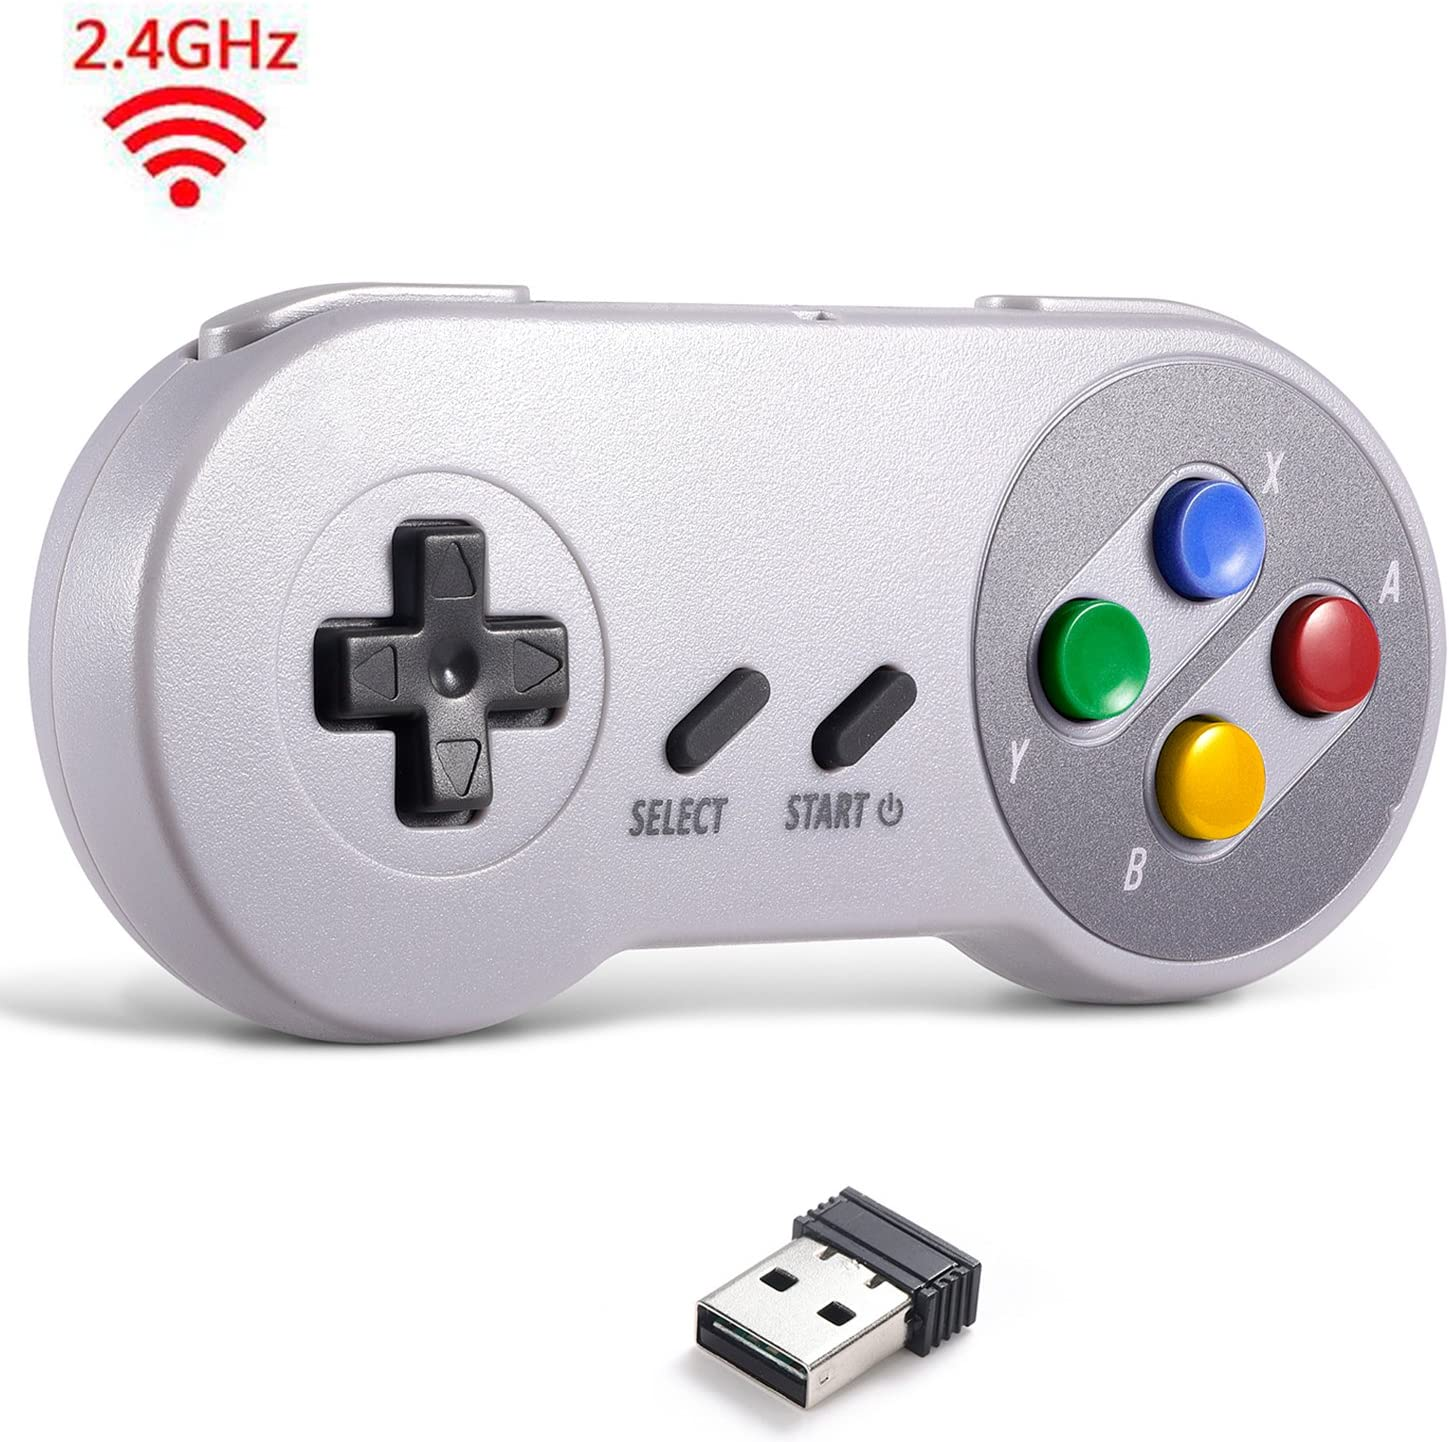 2.4 GHz Wireless USB Controller Compatible with Super Famicom Games, iNNEXT SNES Retro USB Classic Controller Joypad Joystick for Windows PC MAC Linux ...